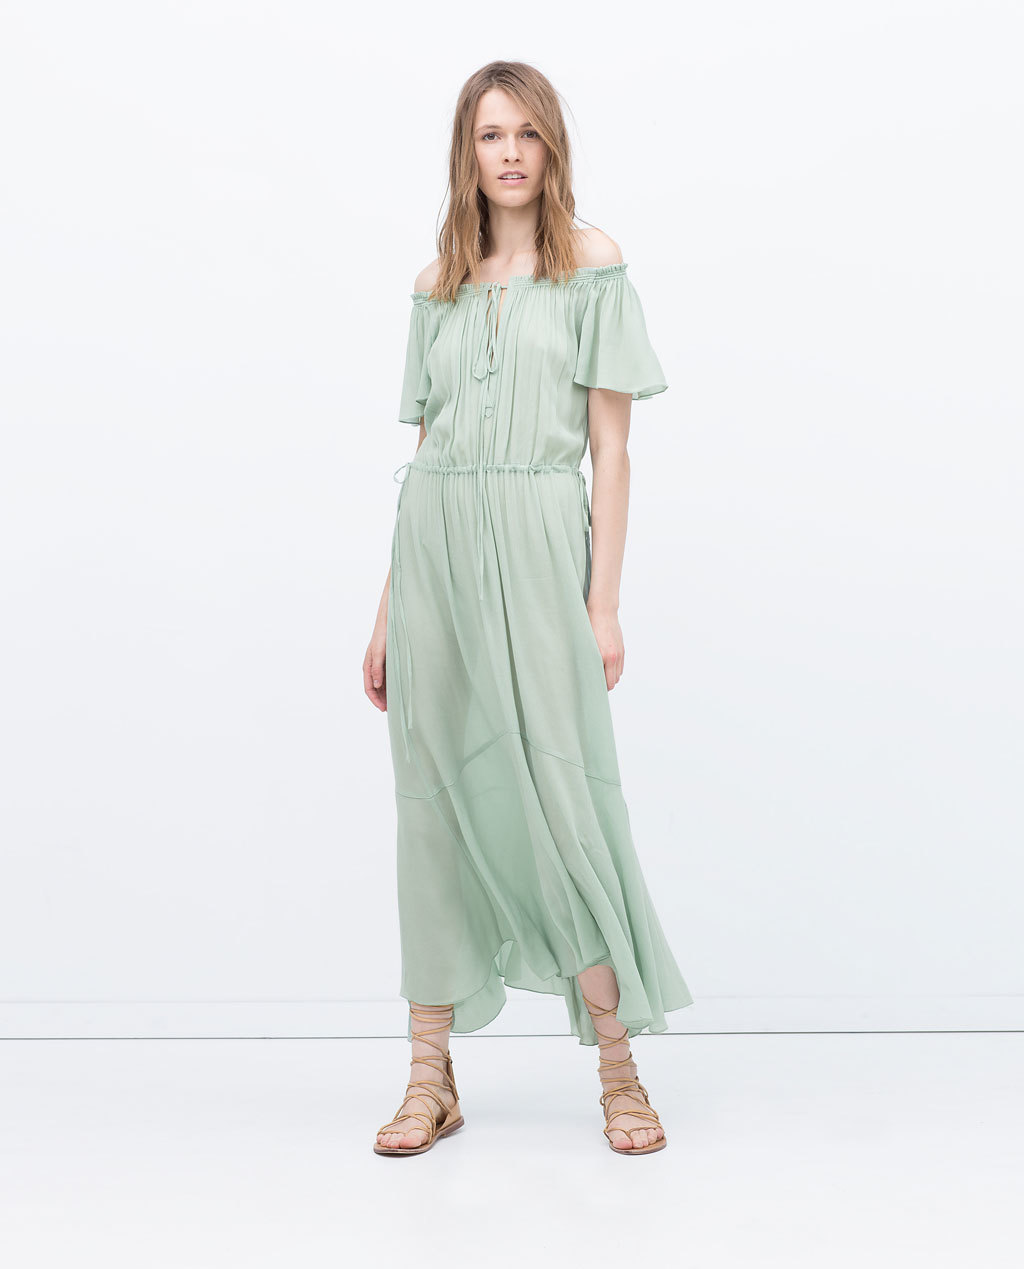 Long Studio Dress - neckline: off the shoulder; sleeve style: angel/waterfall; pattern: plain; style: maxi dress; length: ankle length; predominant colour: pistachio; occasions: casual; fit: soft a-line; fibres: polyester/polyamide - 100%; hip detail: subtle/flattering hip detail; sleeve length: short sleeve; texture group: sheer fabrics/chiffon/organza etc.; pattern type: fabric; season: s/s 2015; wardrobe: highlight